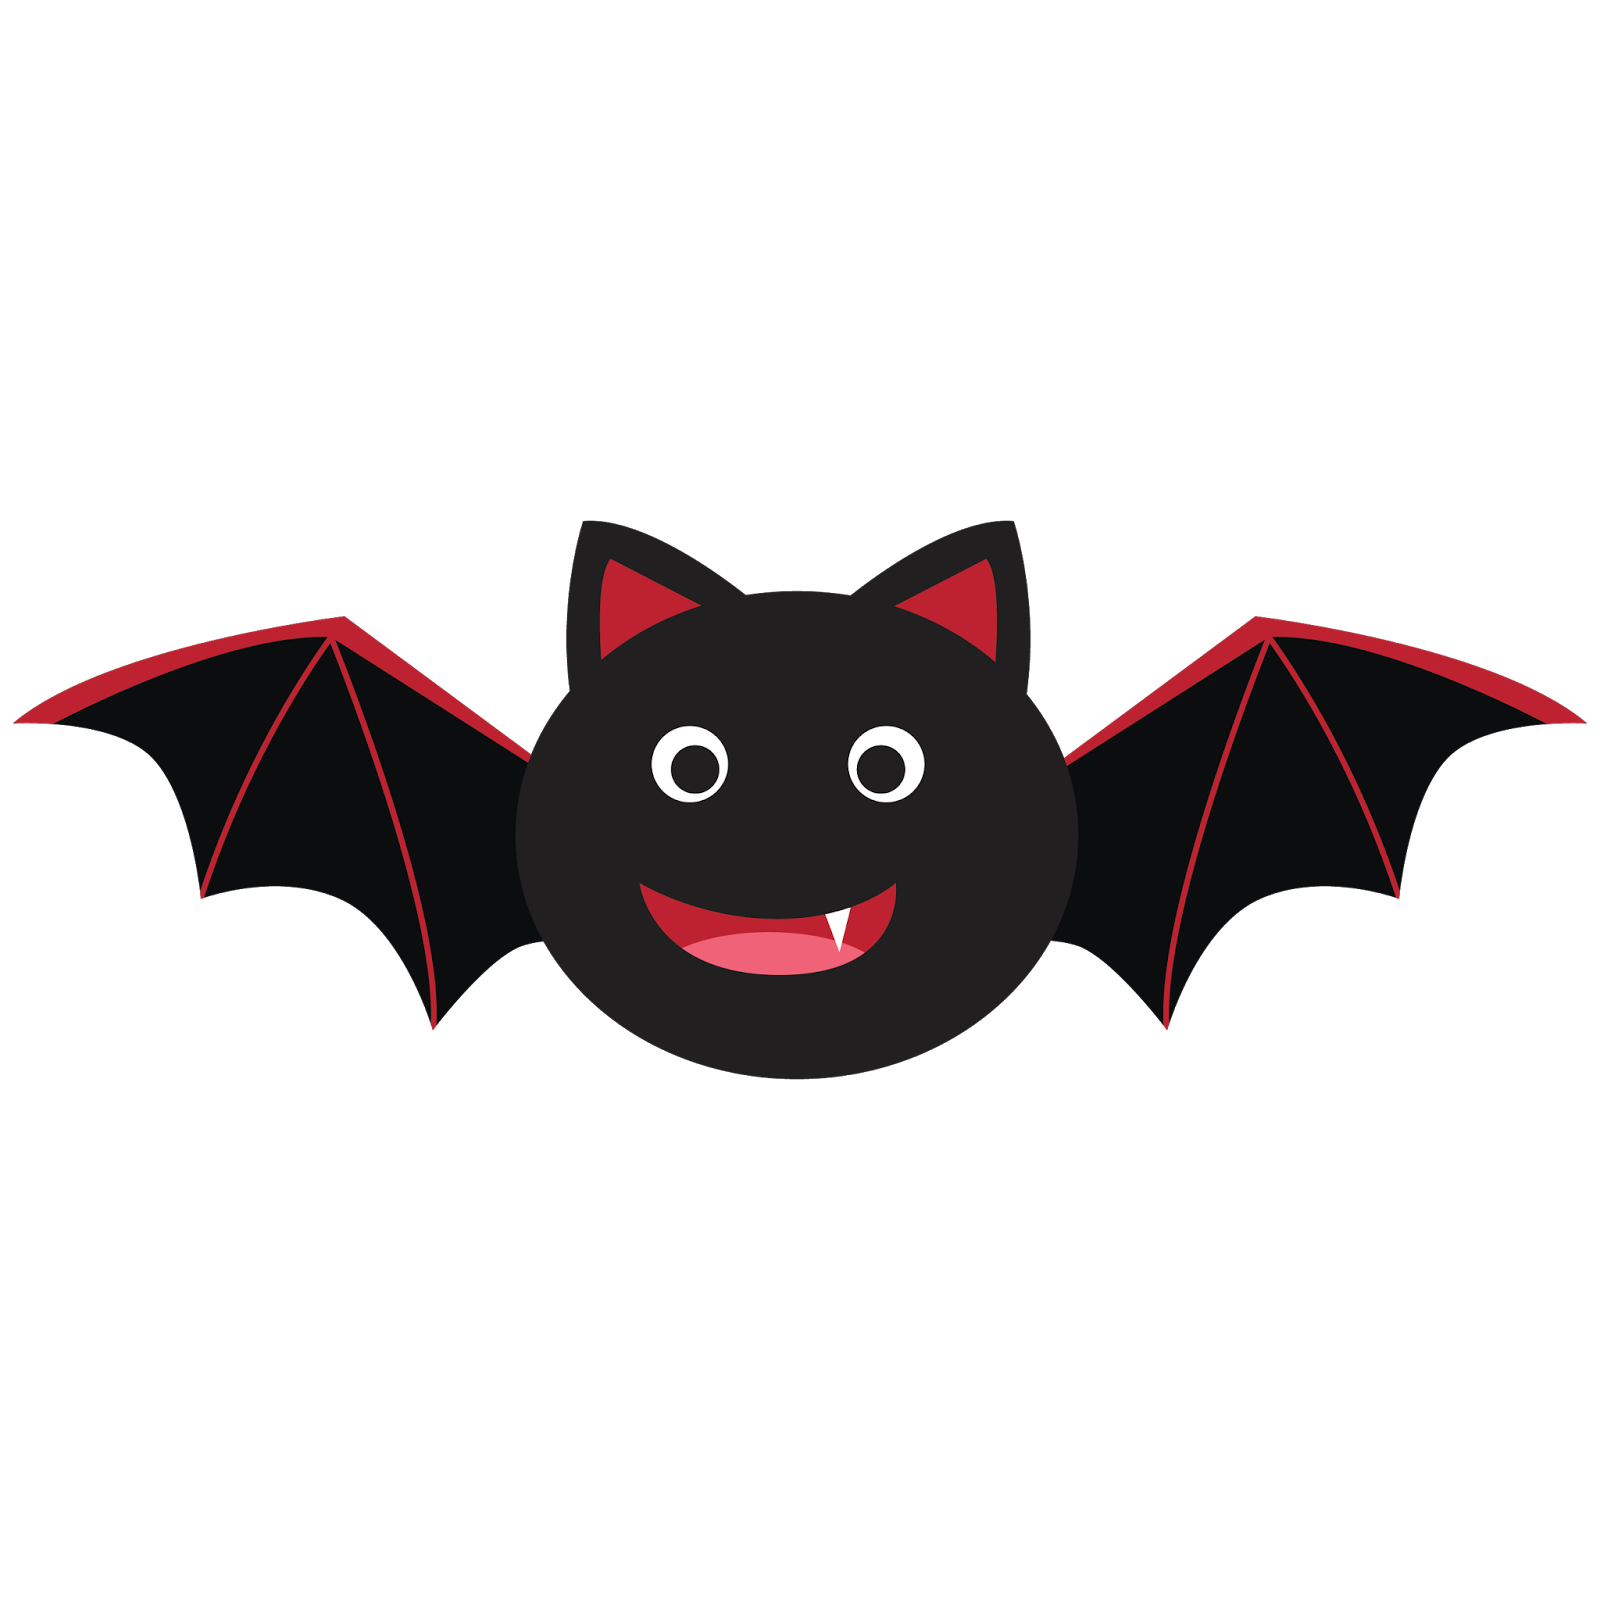 Spirit image clipart halloween clip art transparent stock Bat Clipart For My 15month Old Alfie I | Love bats! | Pinterest ... clip art transparent stock